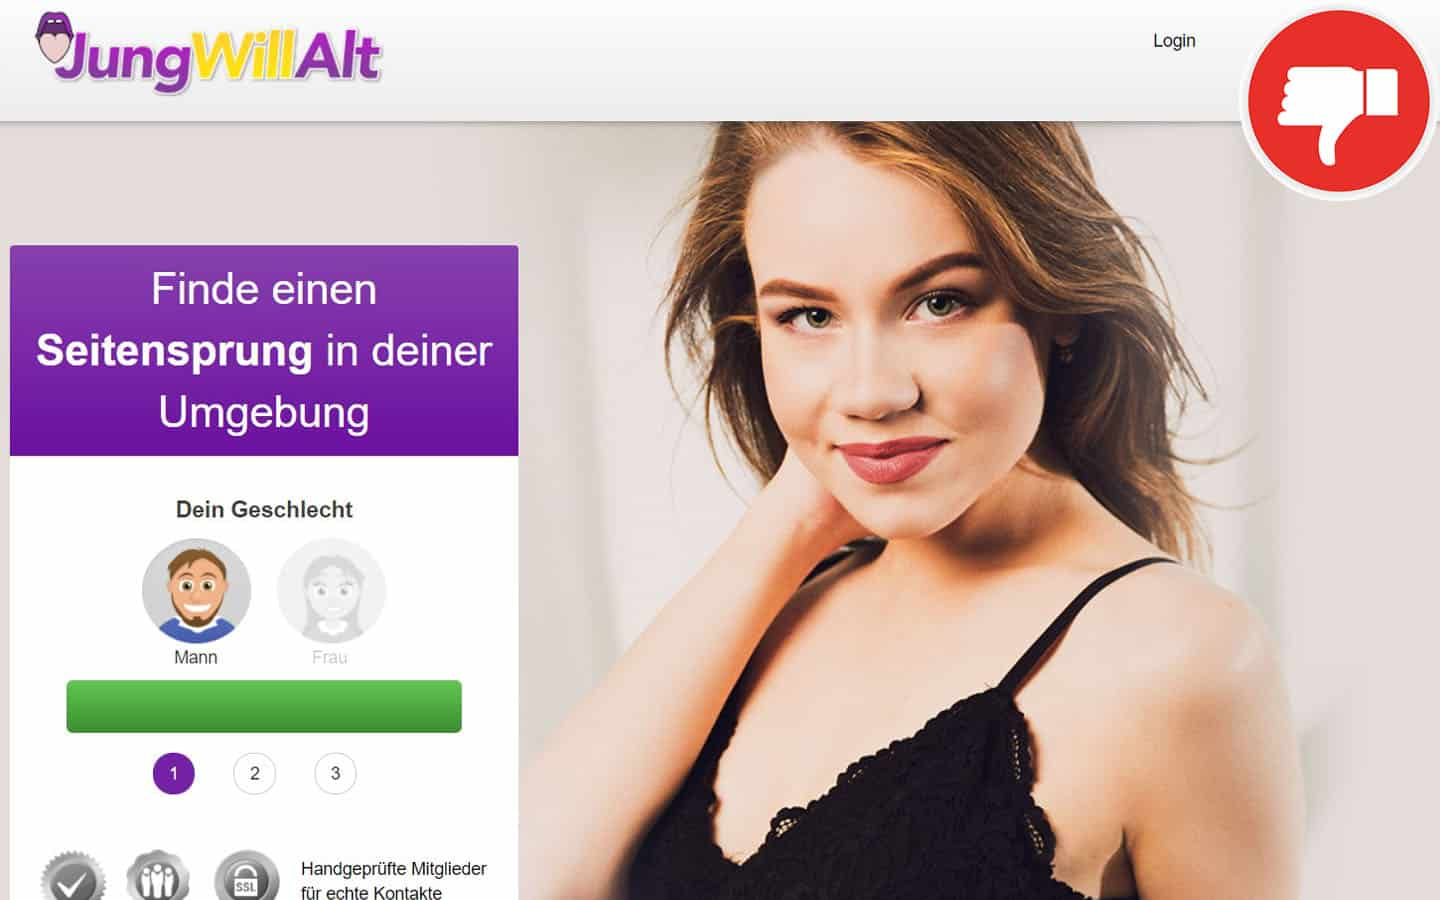 Top kostenlose senioren-dating-sites über 60